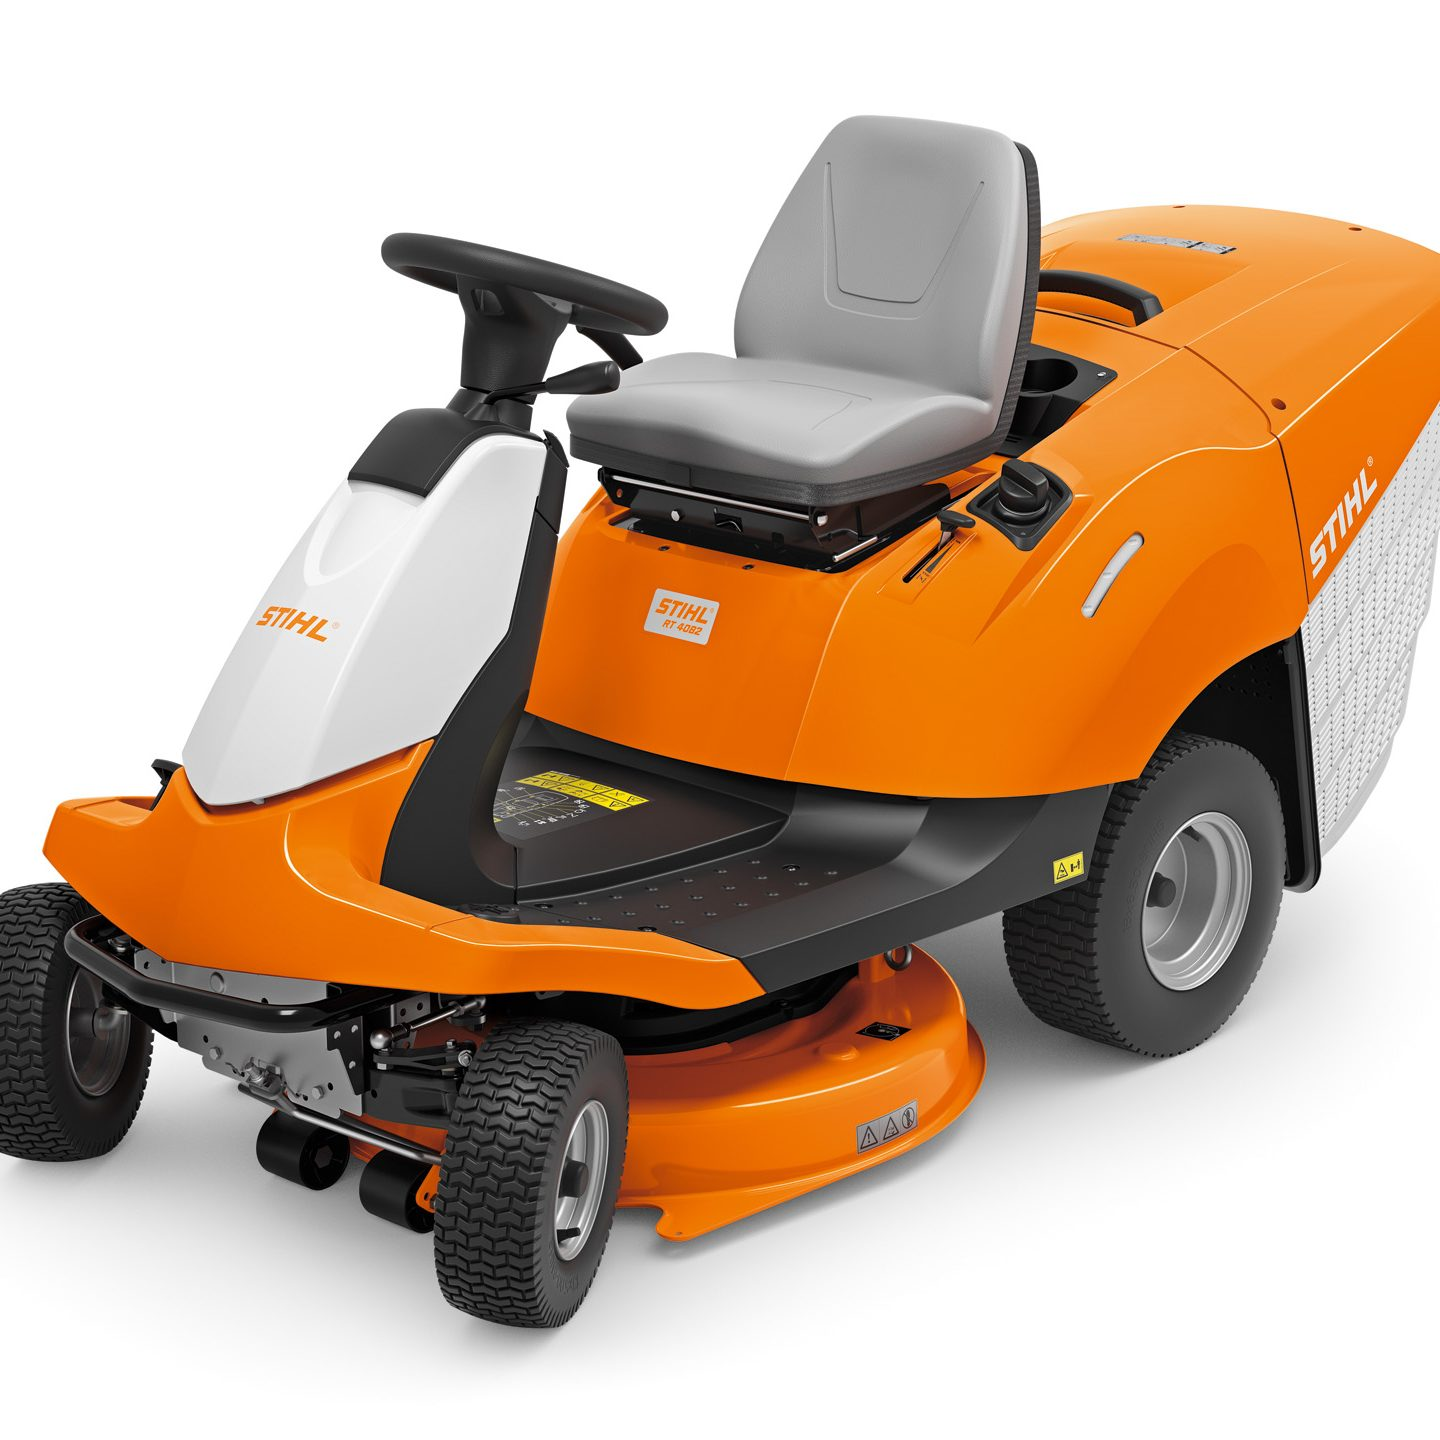 RT 4082 - HIGHLY MANOEUVRABLE RIDE-ON MOWER